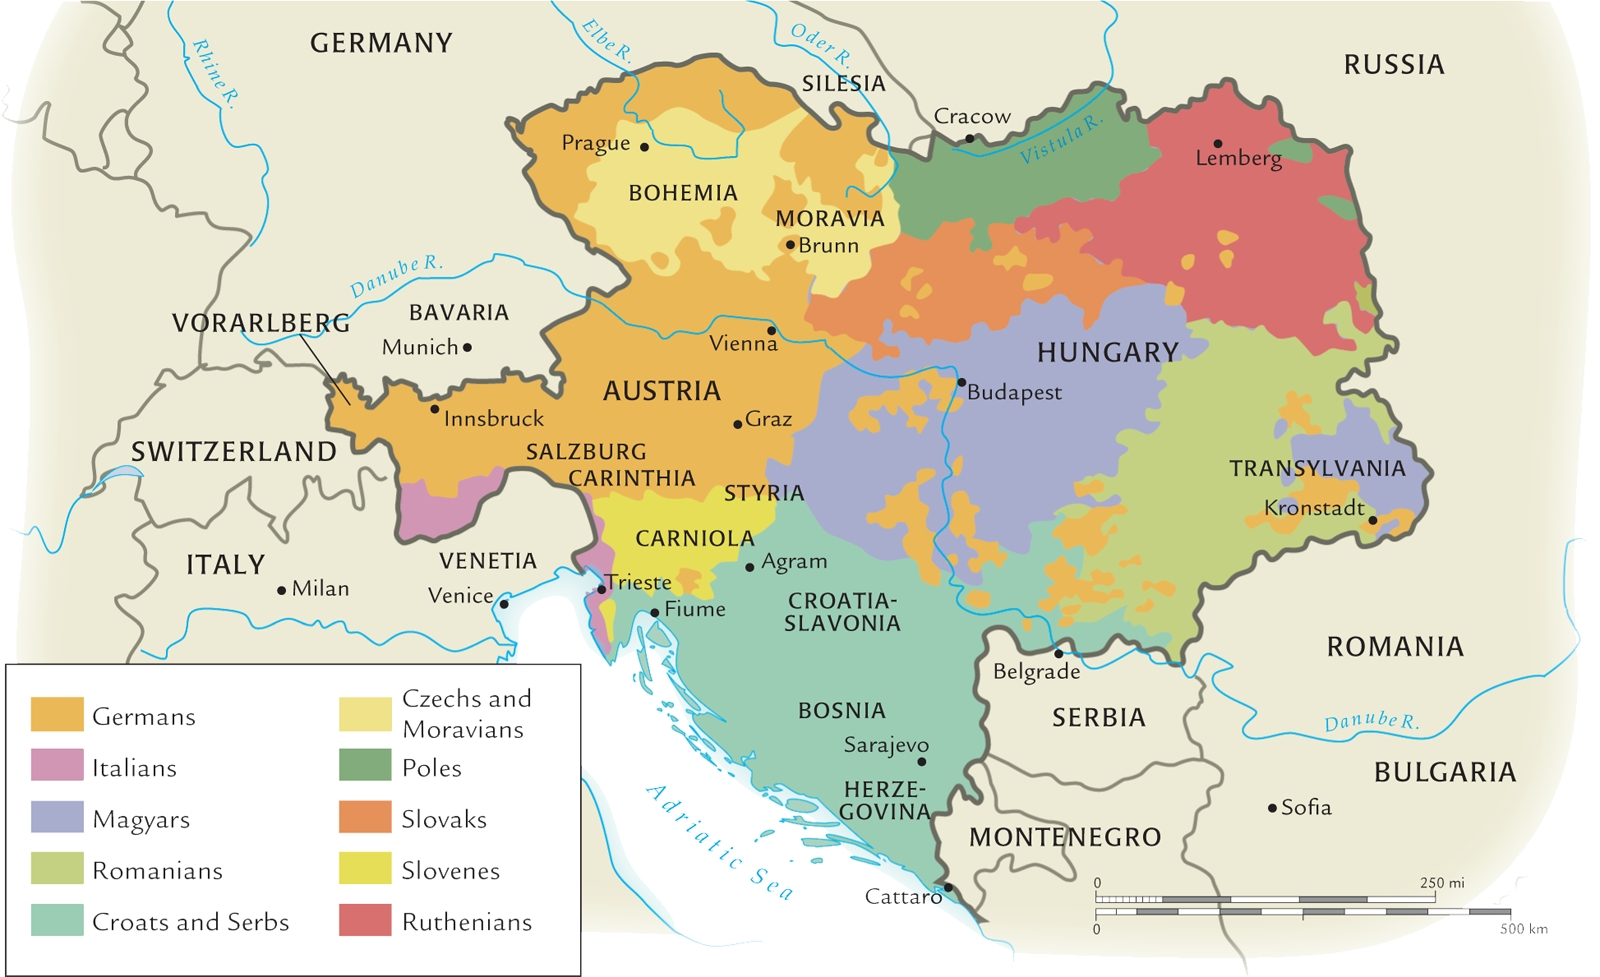 to what extent was the austro hungarian Austro-hungarian empire can be blamed itself, for its defeat in world war i as all the suffering was caused just to confront the serbians the whole idea was turned down due to participation of russians and further by the discreet act of italians.